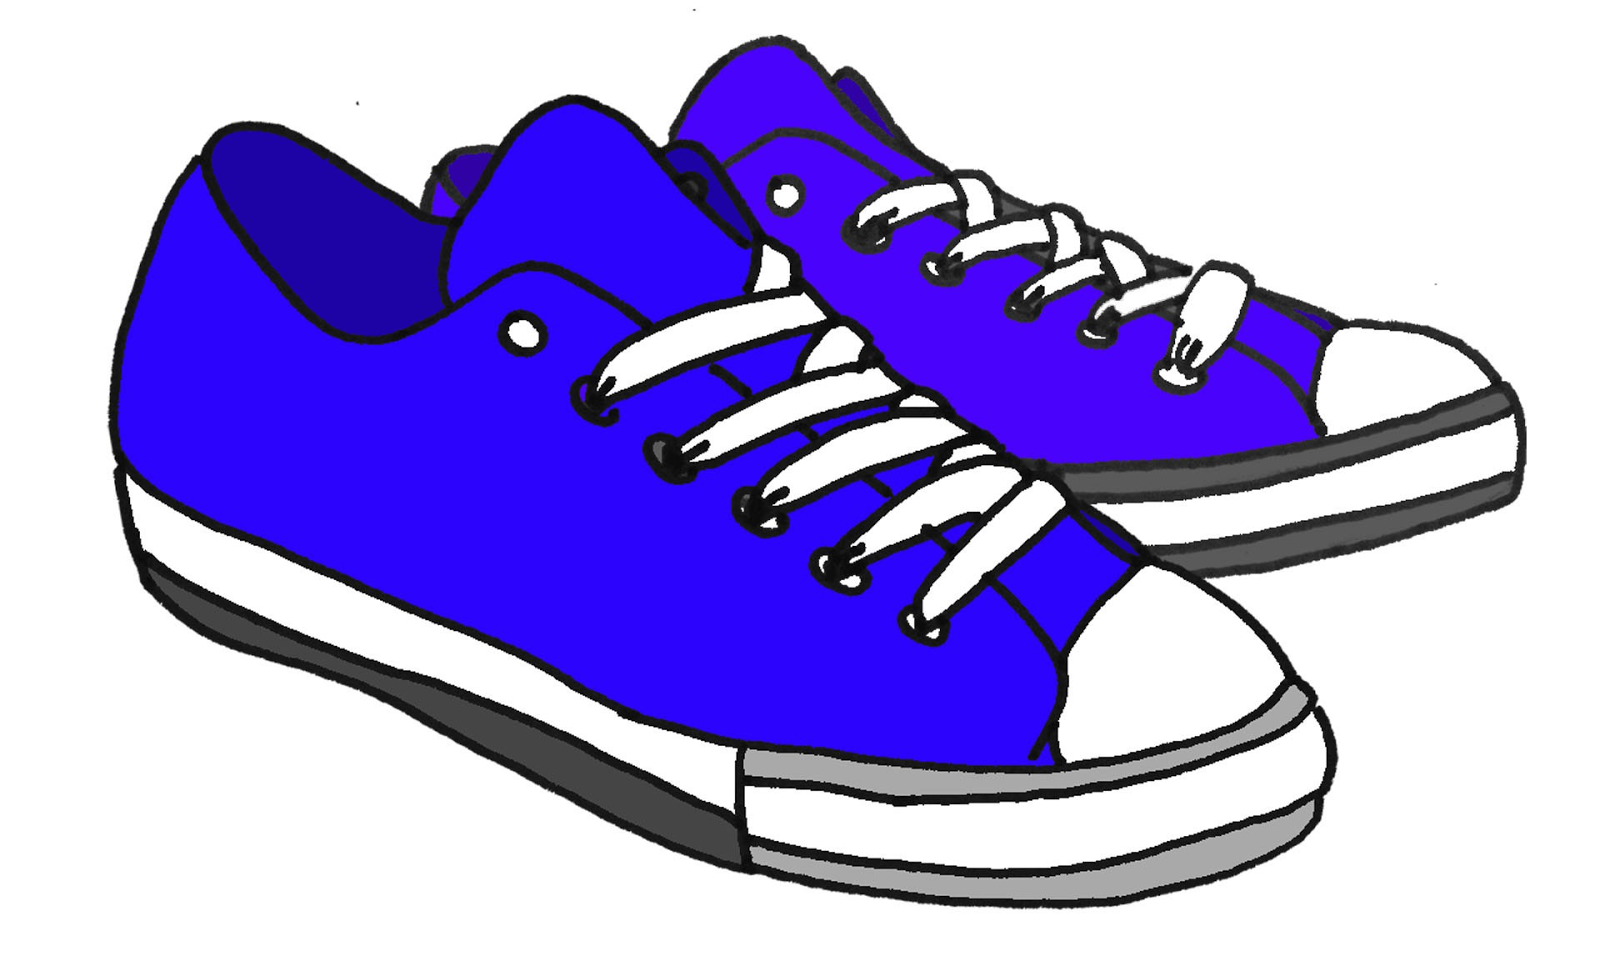 Shoe clipart #1, Download drawings